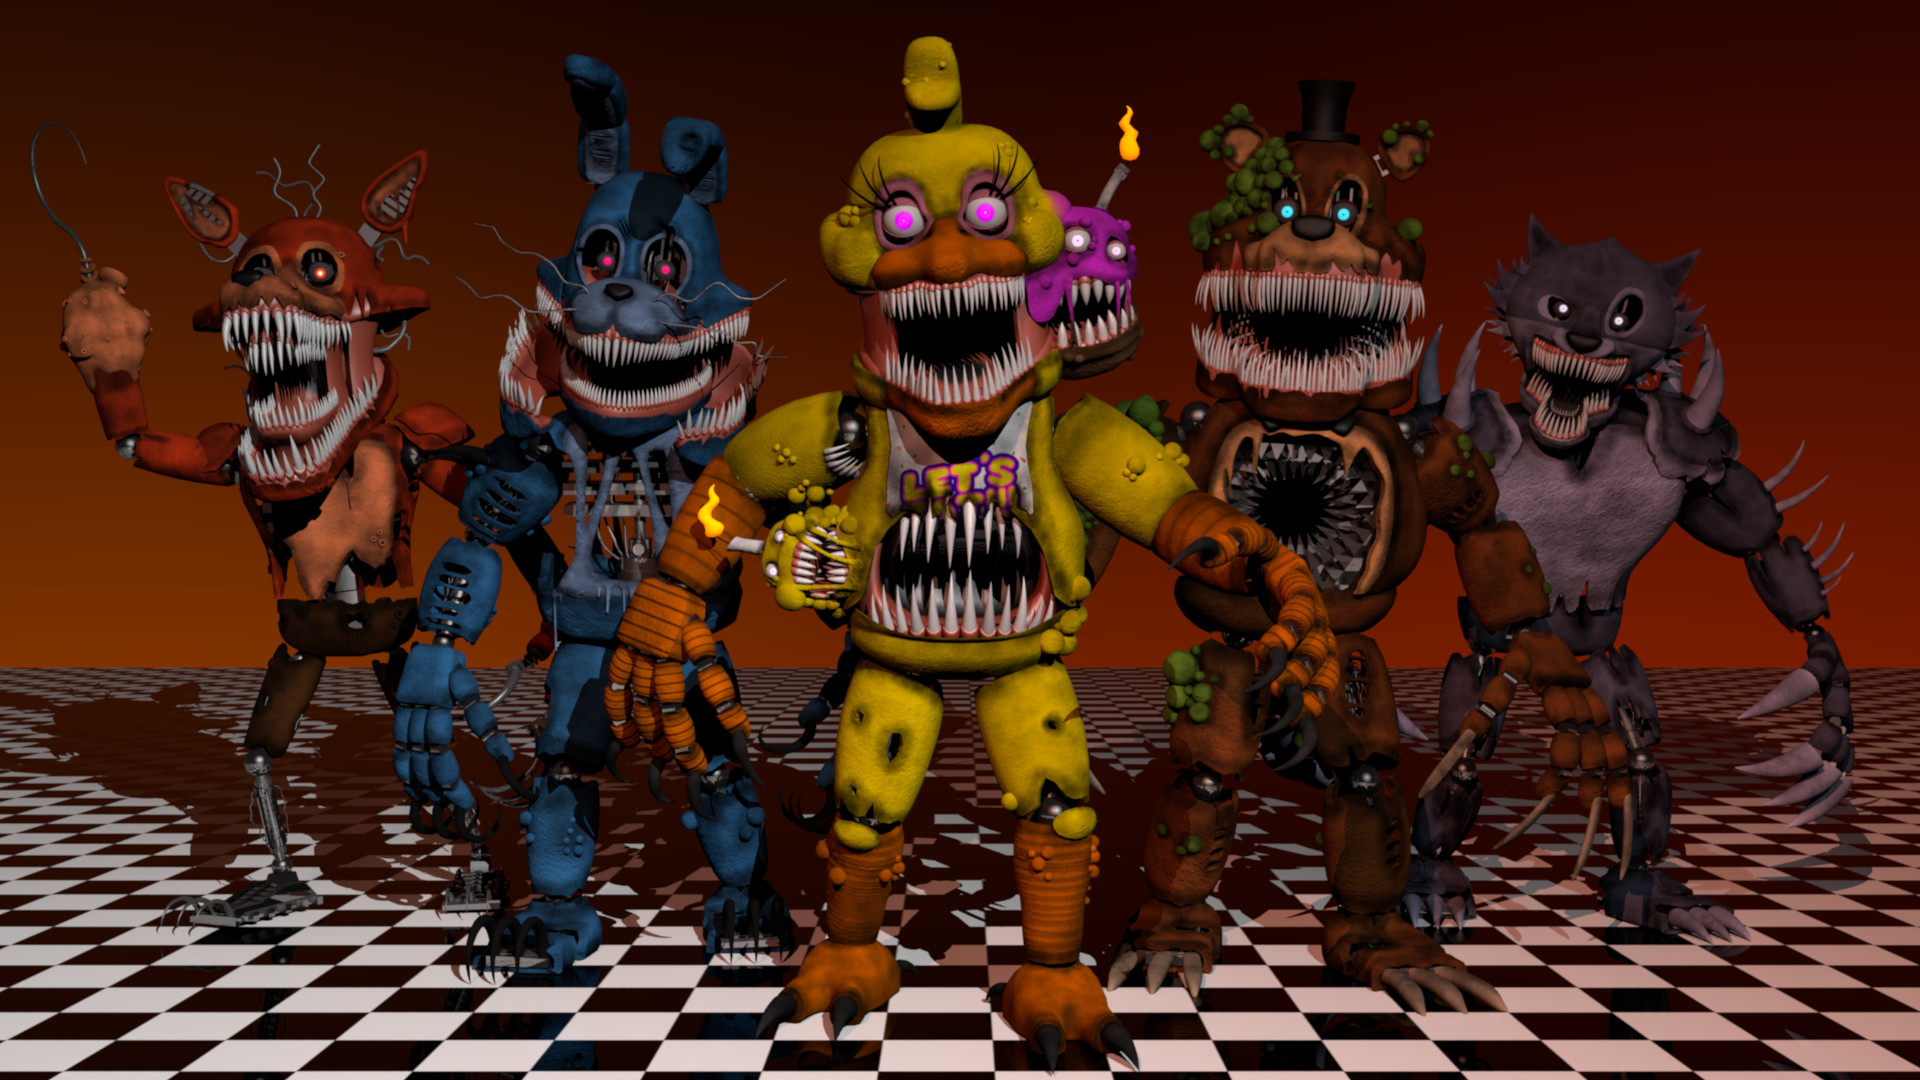 Thomas Honeybell - Five Nights at Freddy's: The Twisted Ones fan